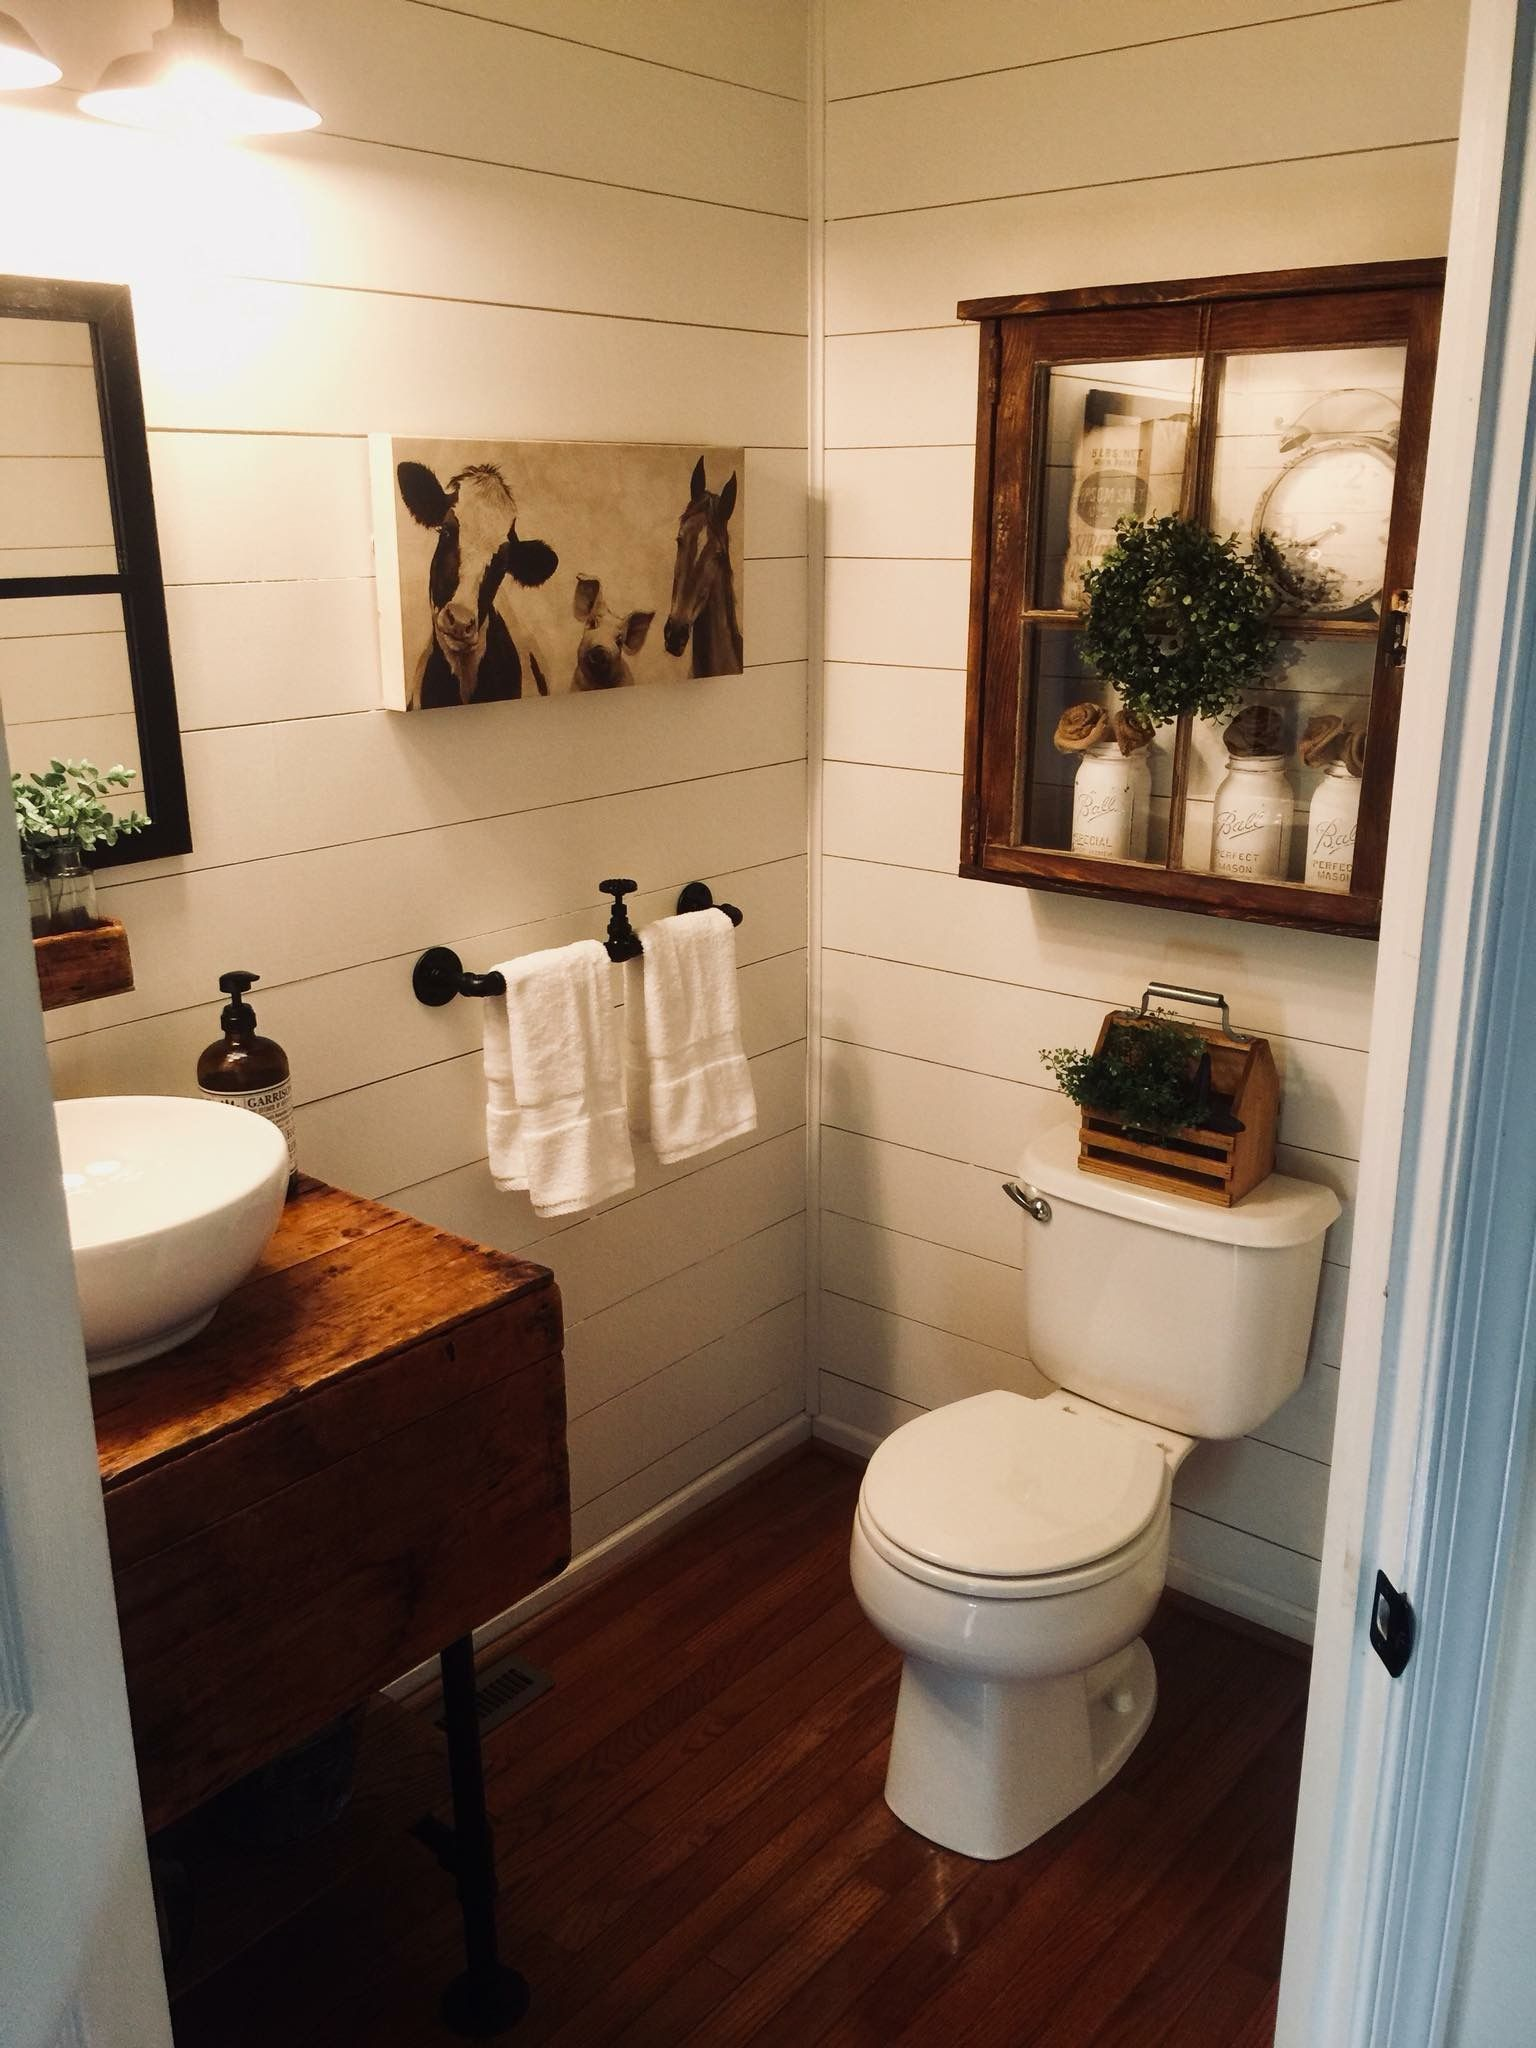 Love the picture cow pig horse dream bathrooms beautiful laundry room bathroom also before and after remodel with lowes rh pinterest